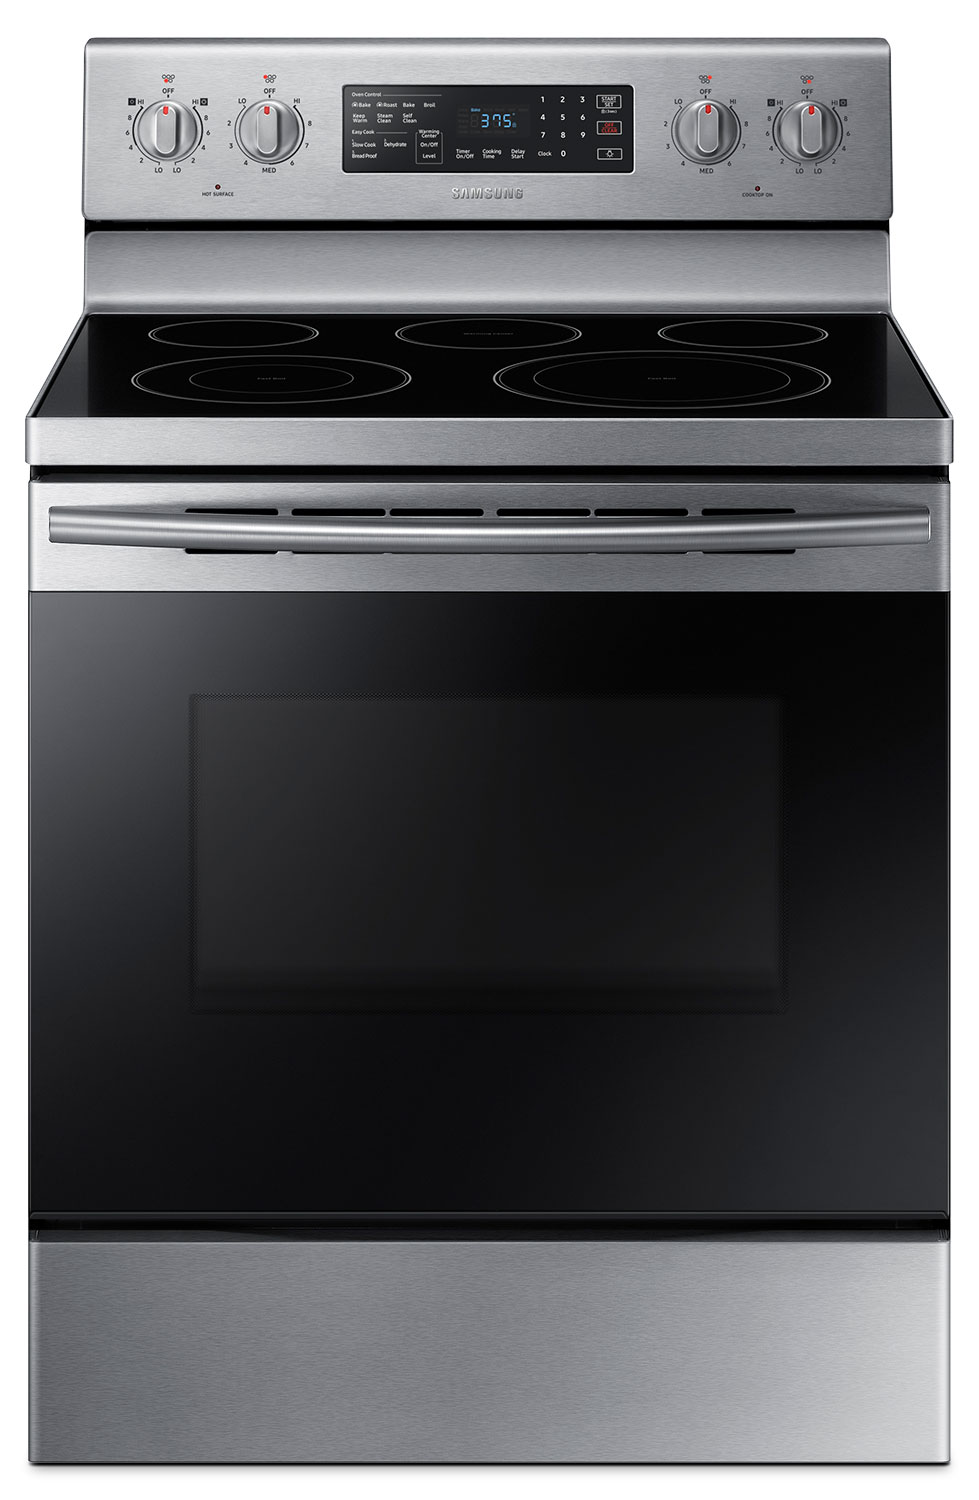 Samsung 5.9 Cu. Ft. Freestanding Electric Convection Range – NE59M4320SS/AC